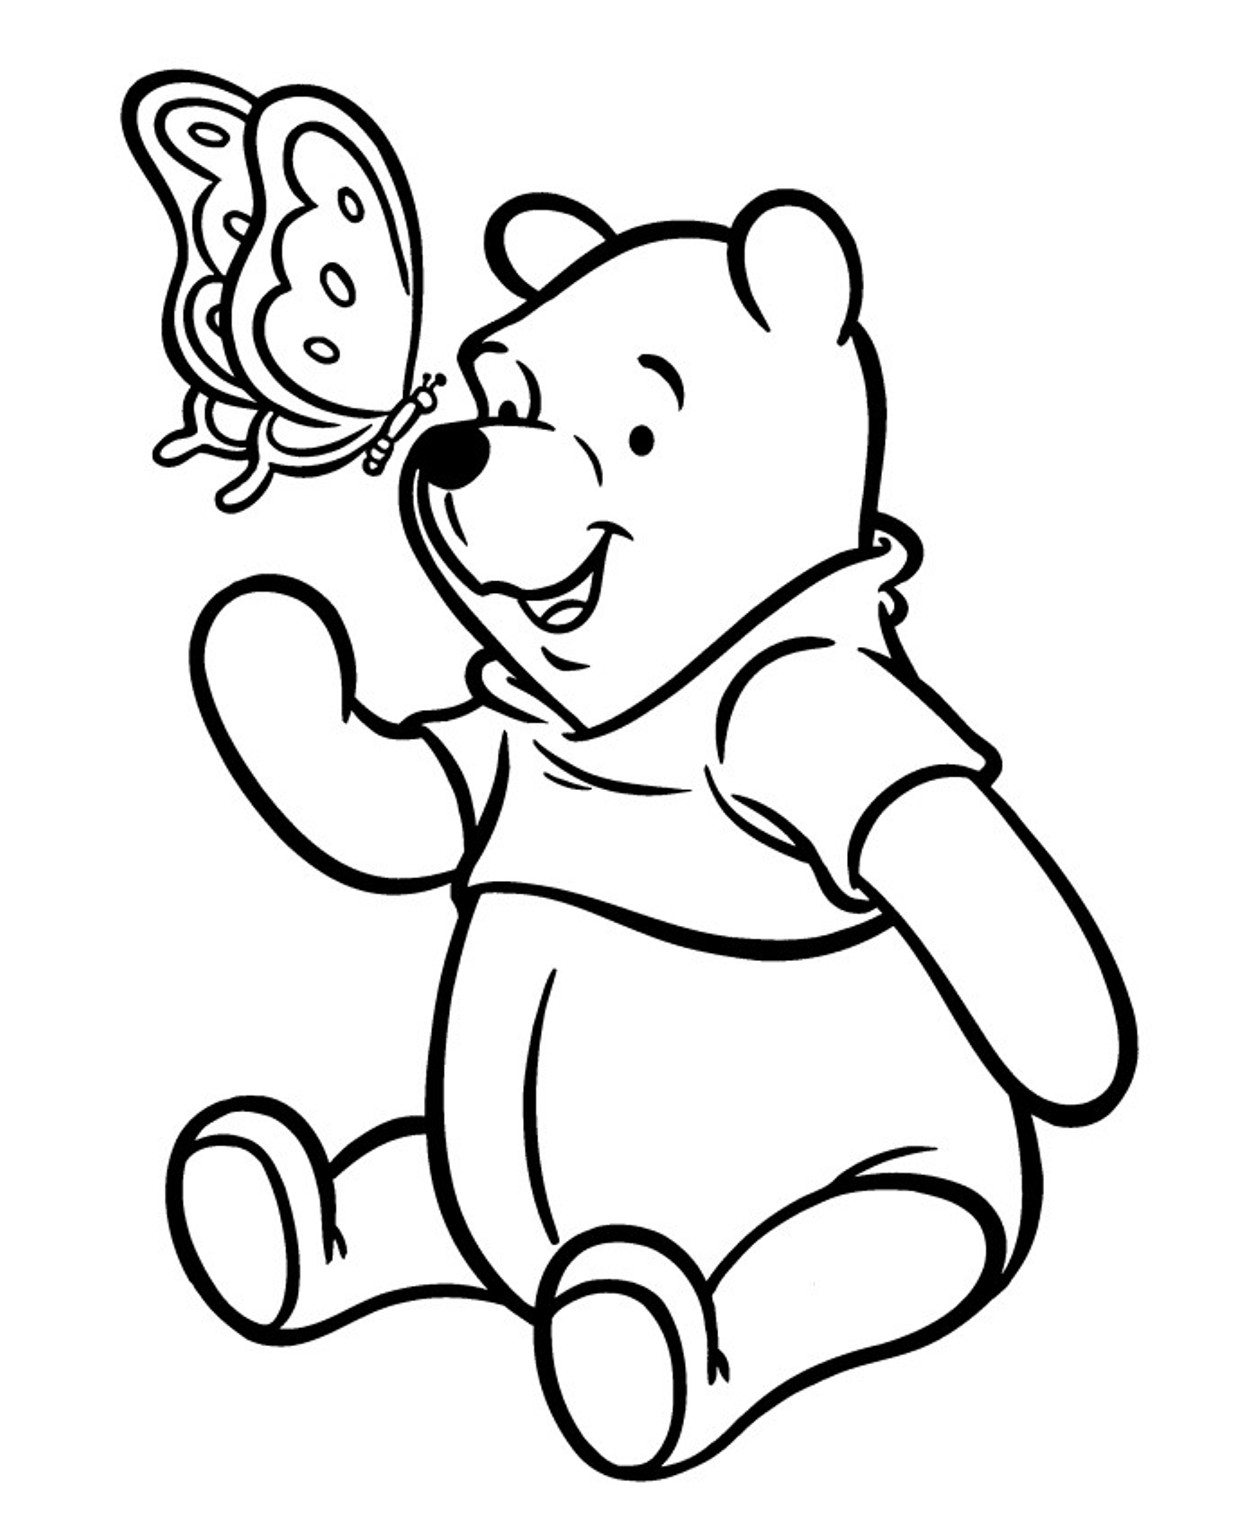 1260x1517 Awesome Disney Baby Pooh Printable Coloring Pages Page Within